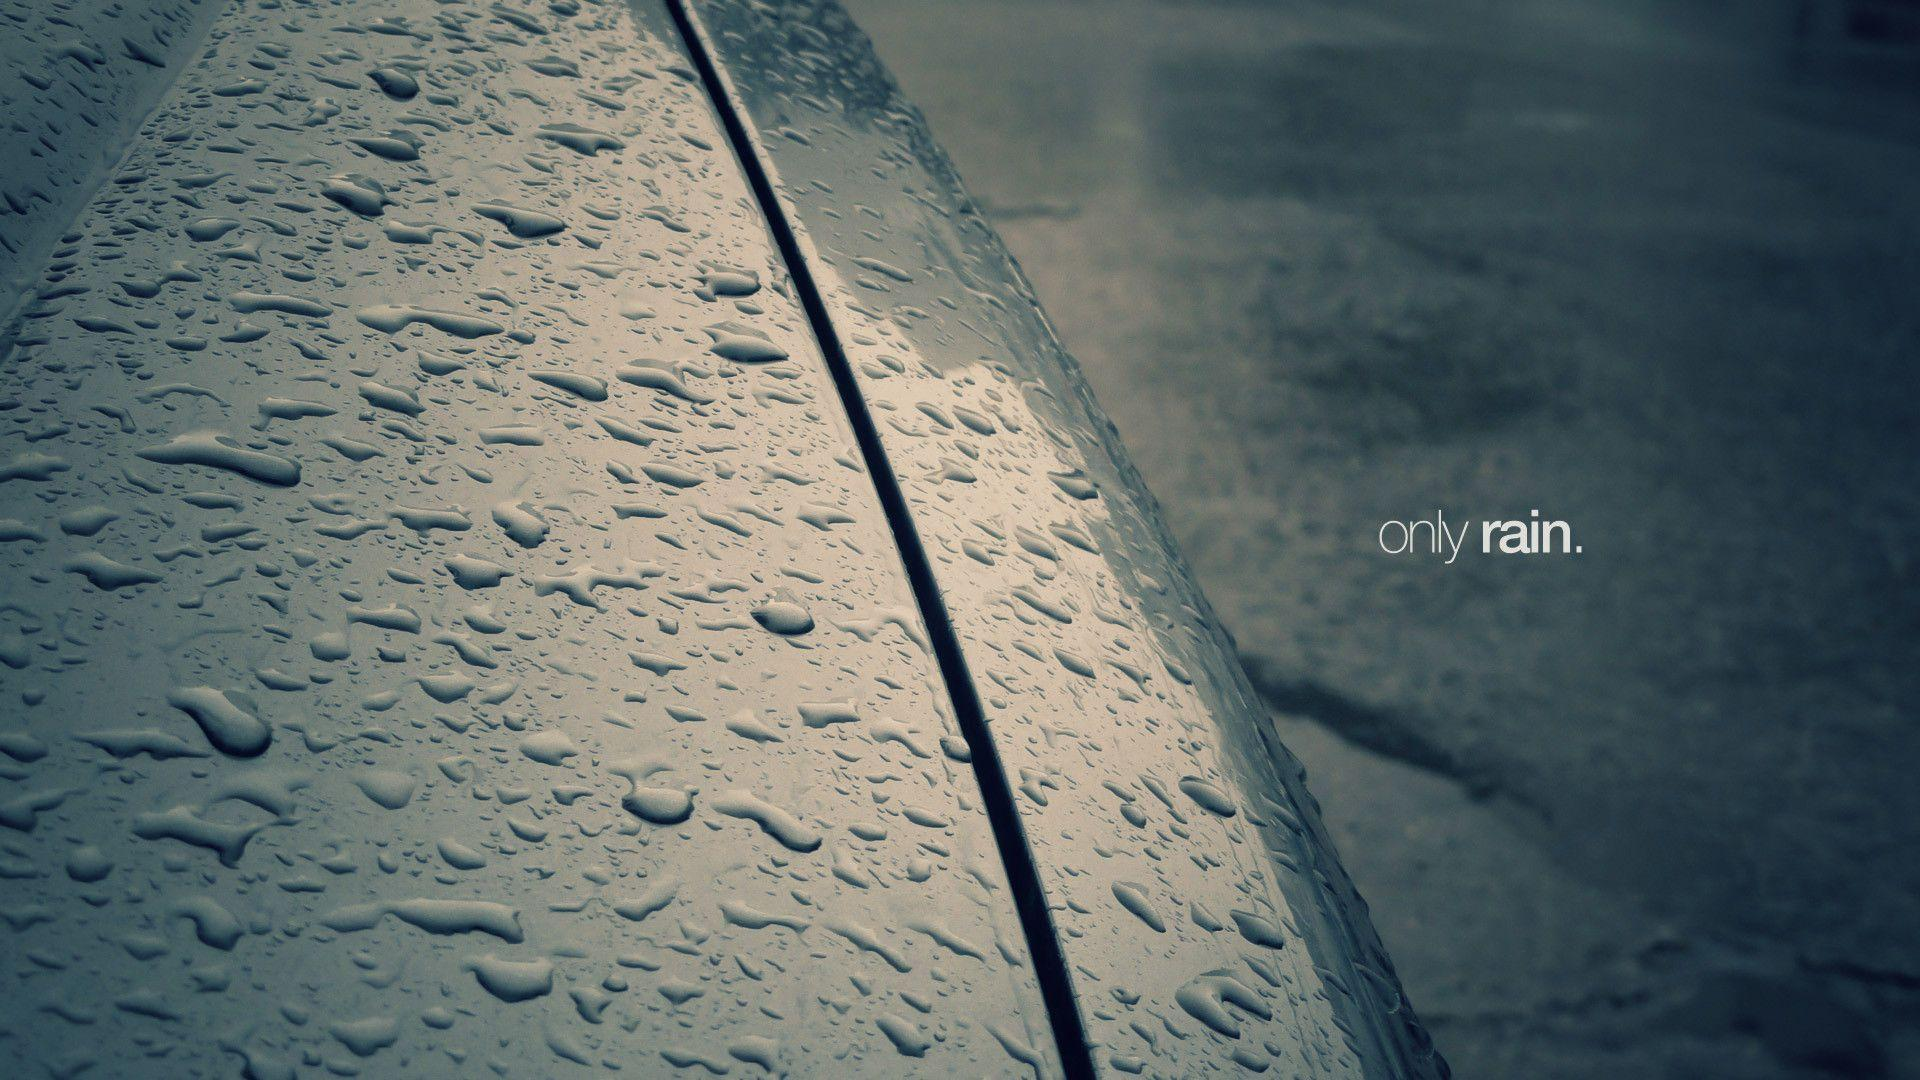 Only Rain HD Wallpapers